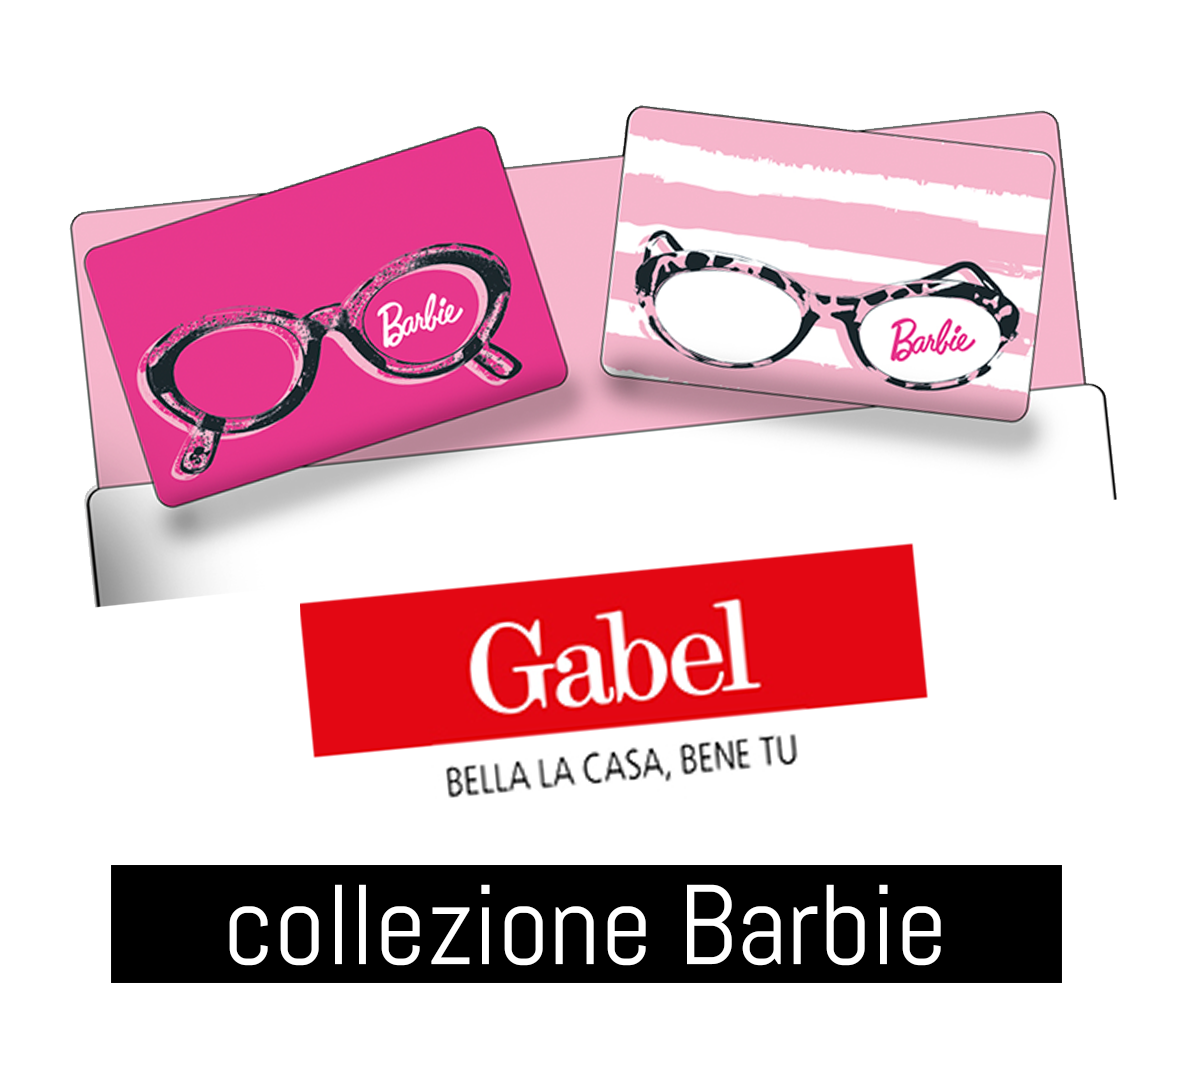 Gabel Barbie